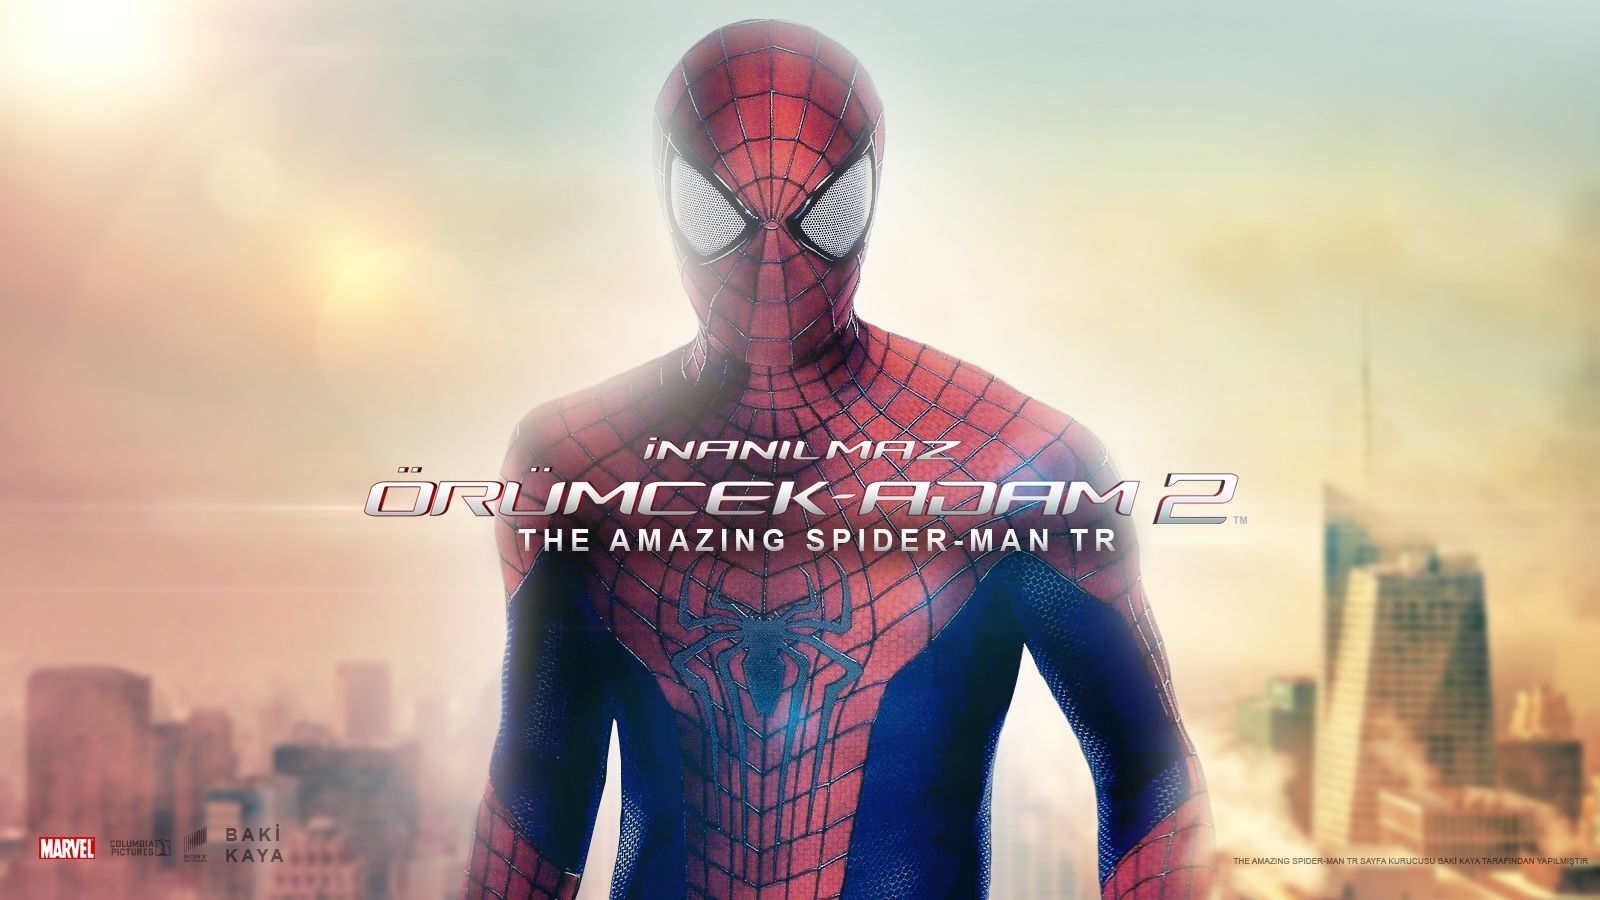 The Amazing SpiderMan Wallpapers HD Facebook Cover Photos 1024x576 Spider Man 2 44